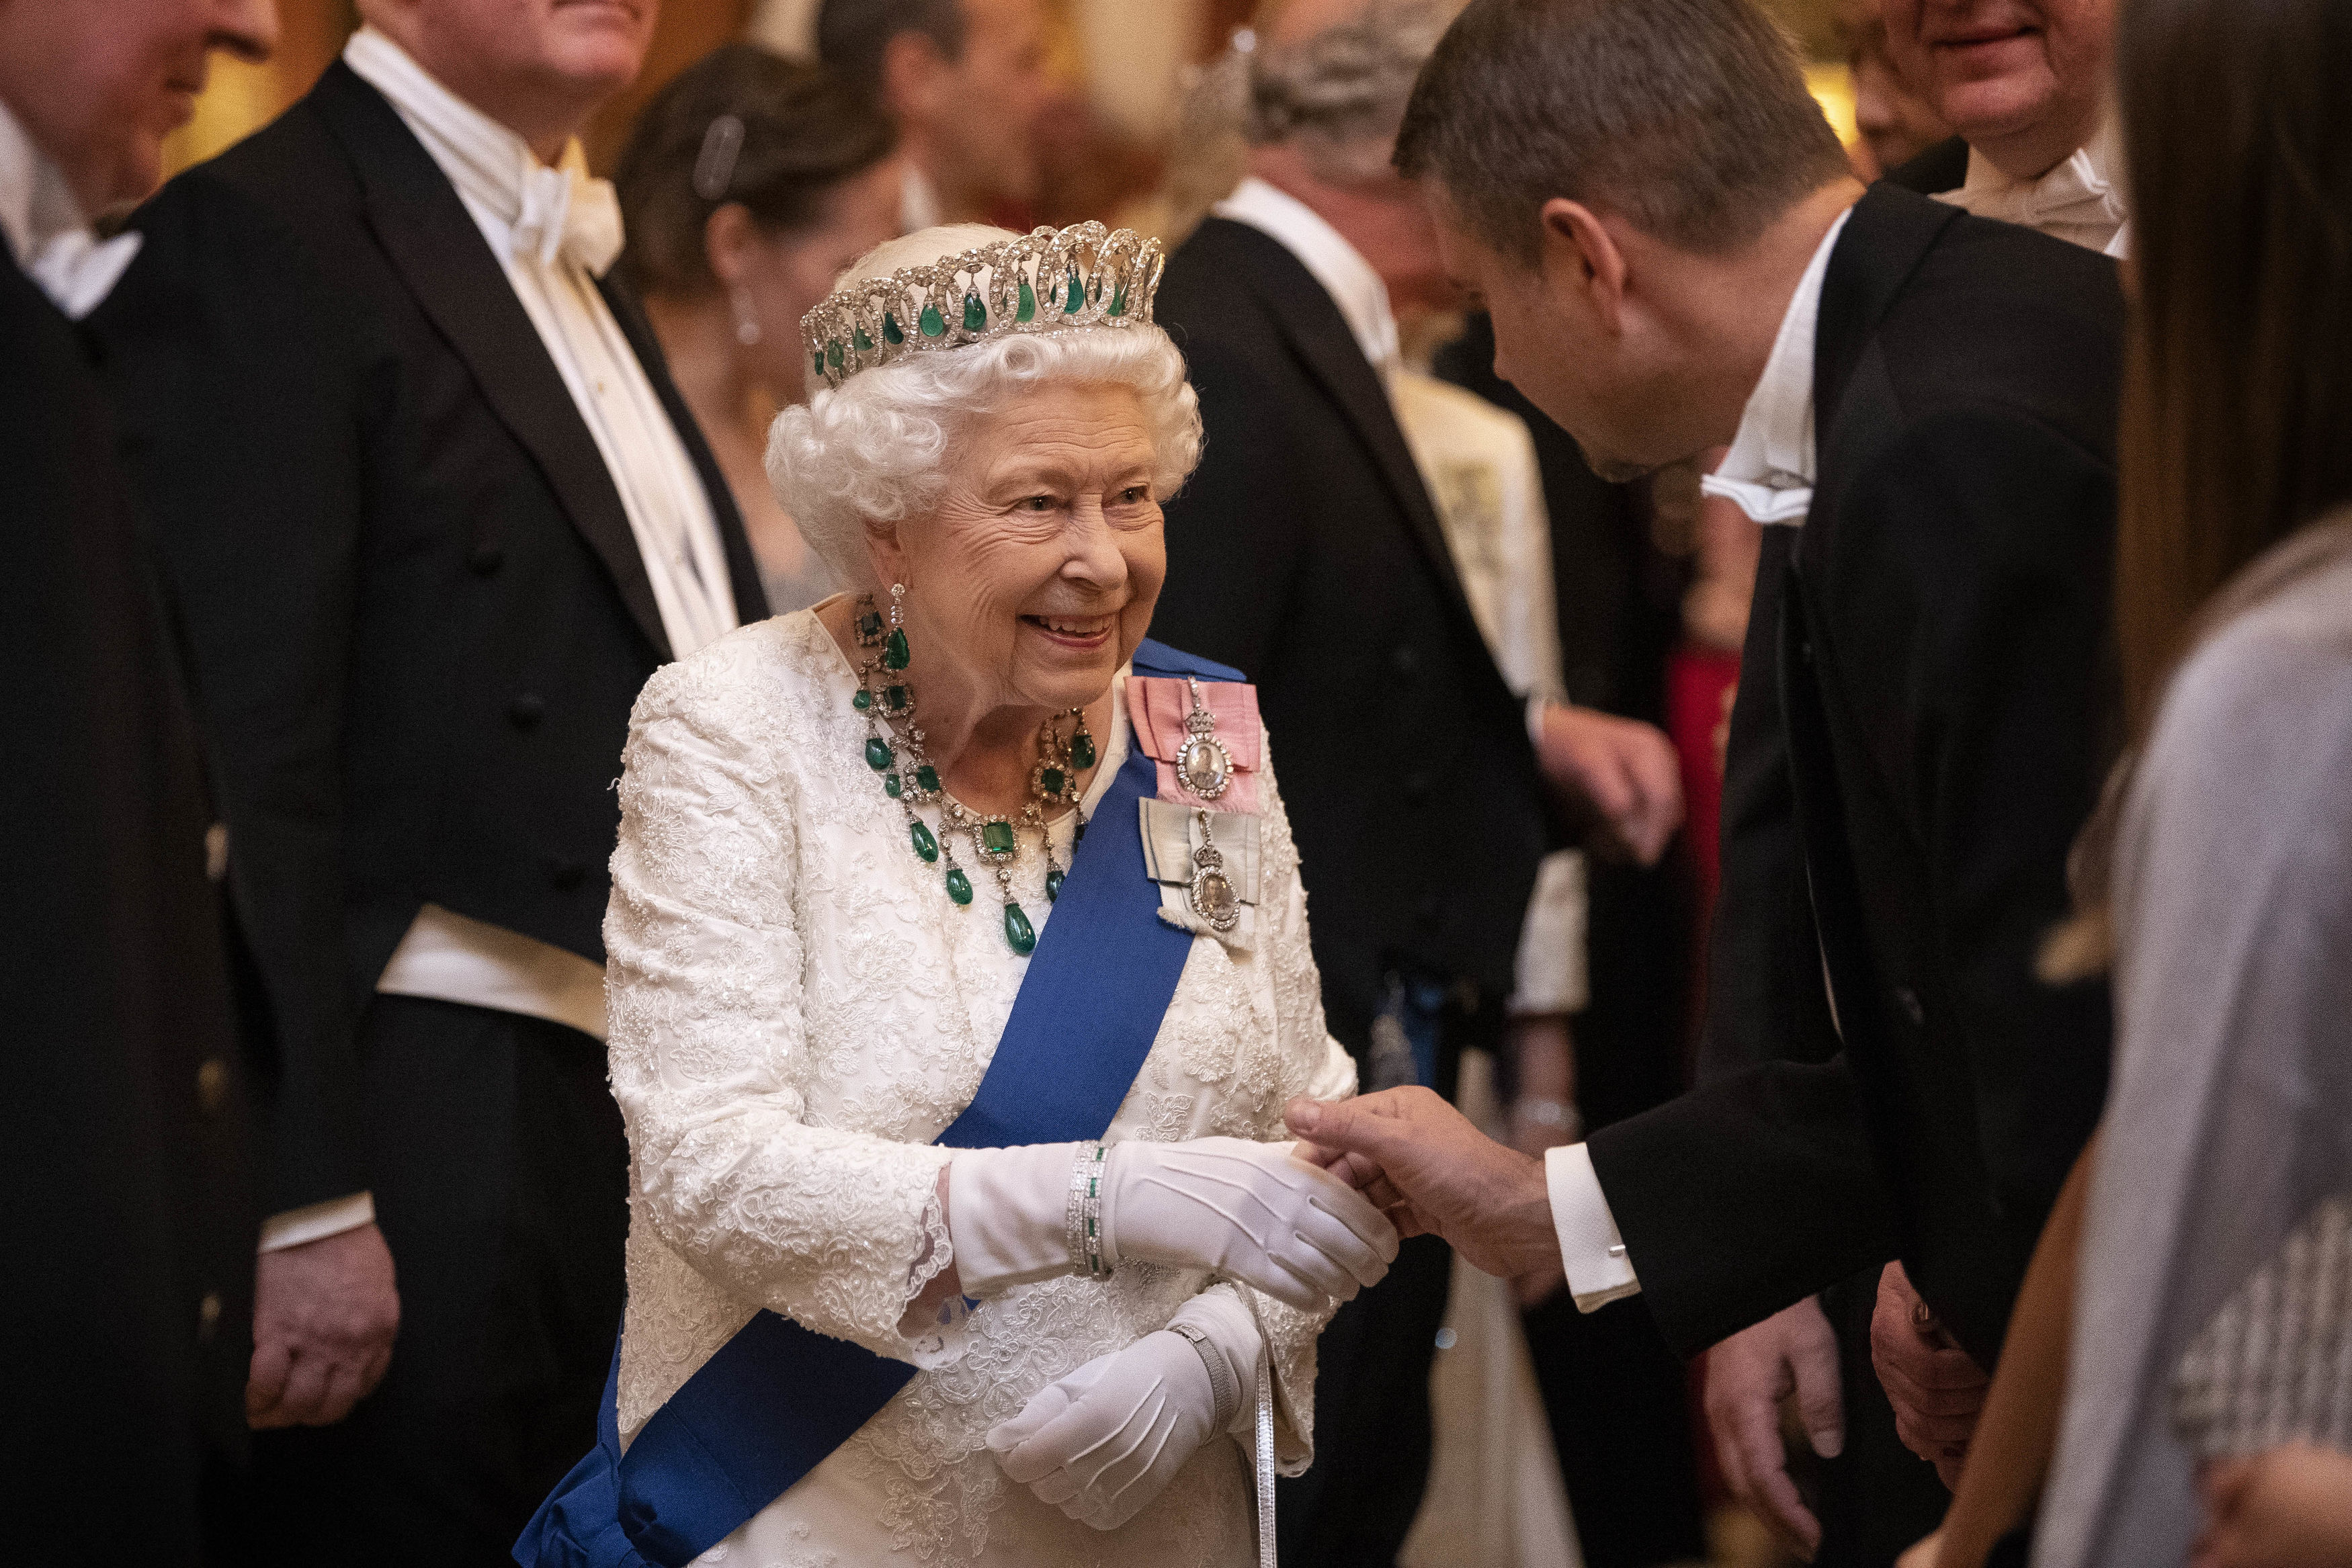 The Queen has been left in a difficult position following the scandal surrounding Prince Andrew (Picture: Victoria Jones/PA Wire)